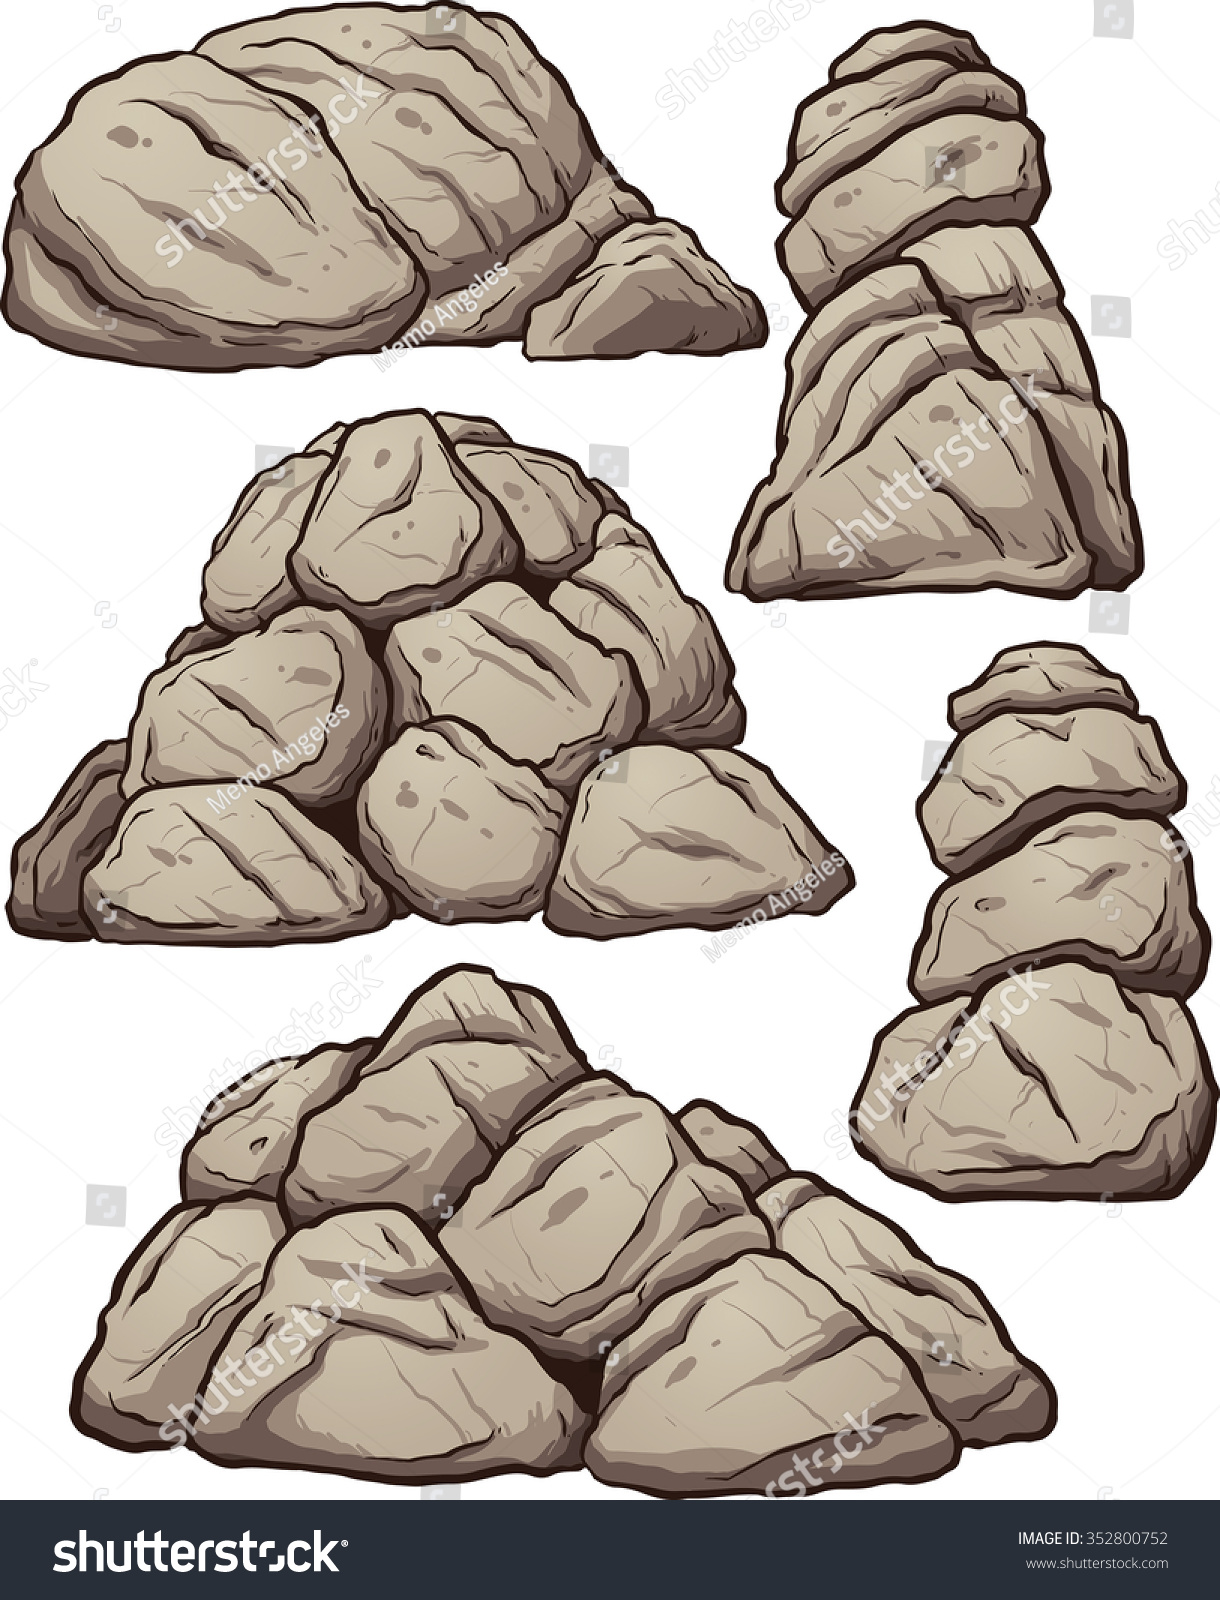 Clip Art Rocks Clipart piles rocks vector clip art illustration stock 352800752 of with simple gradients each pile on a